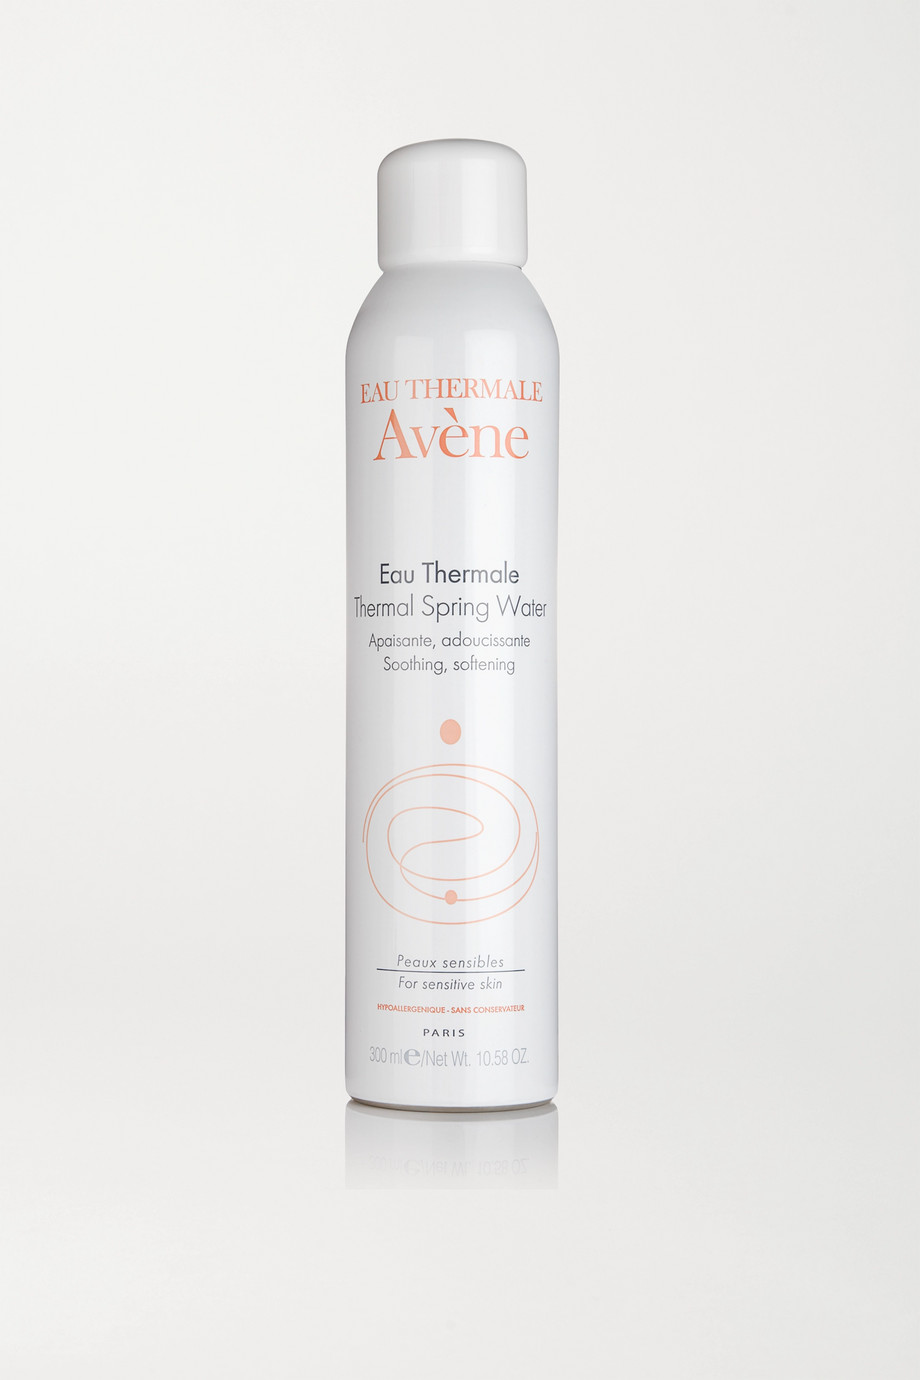 Avene Thermal Spring Water Spray, 300ml